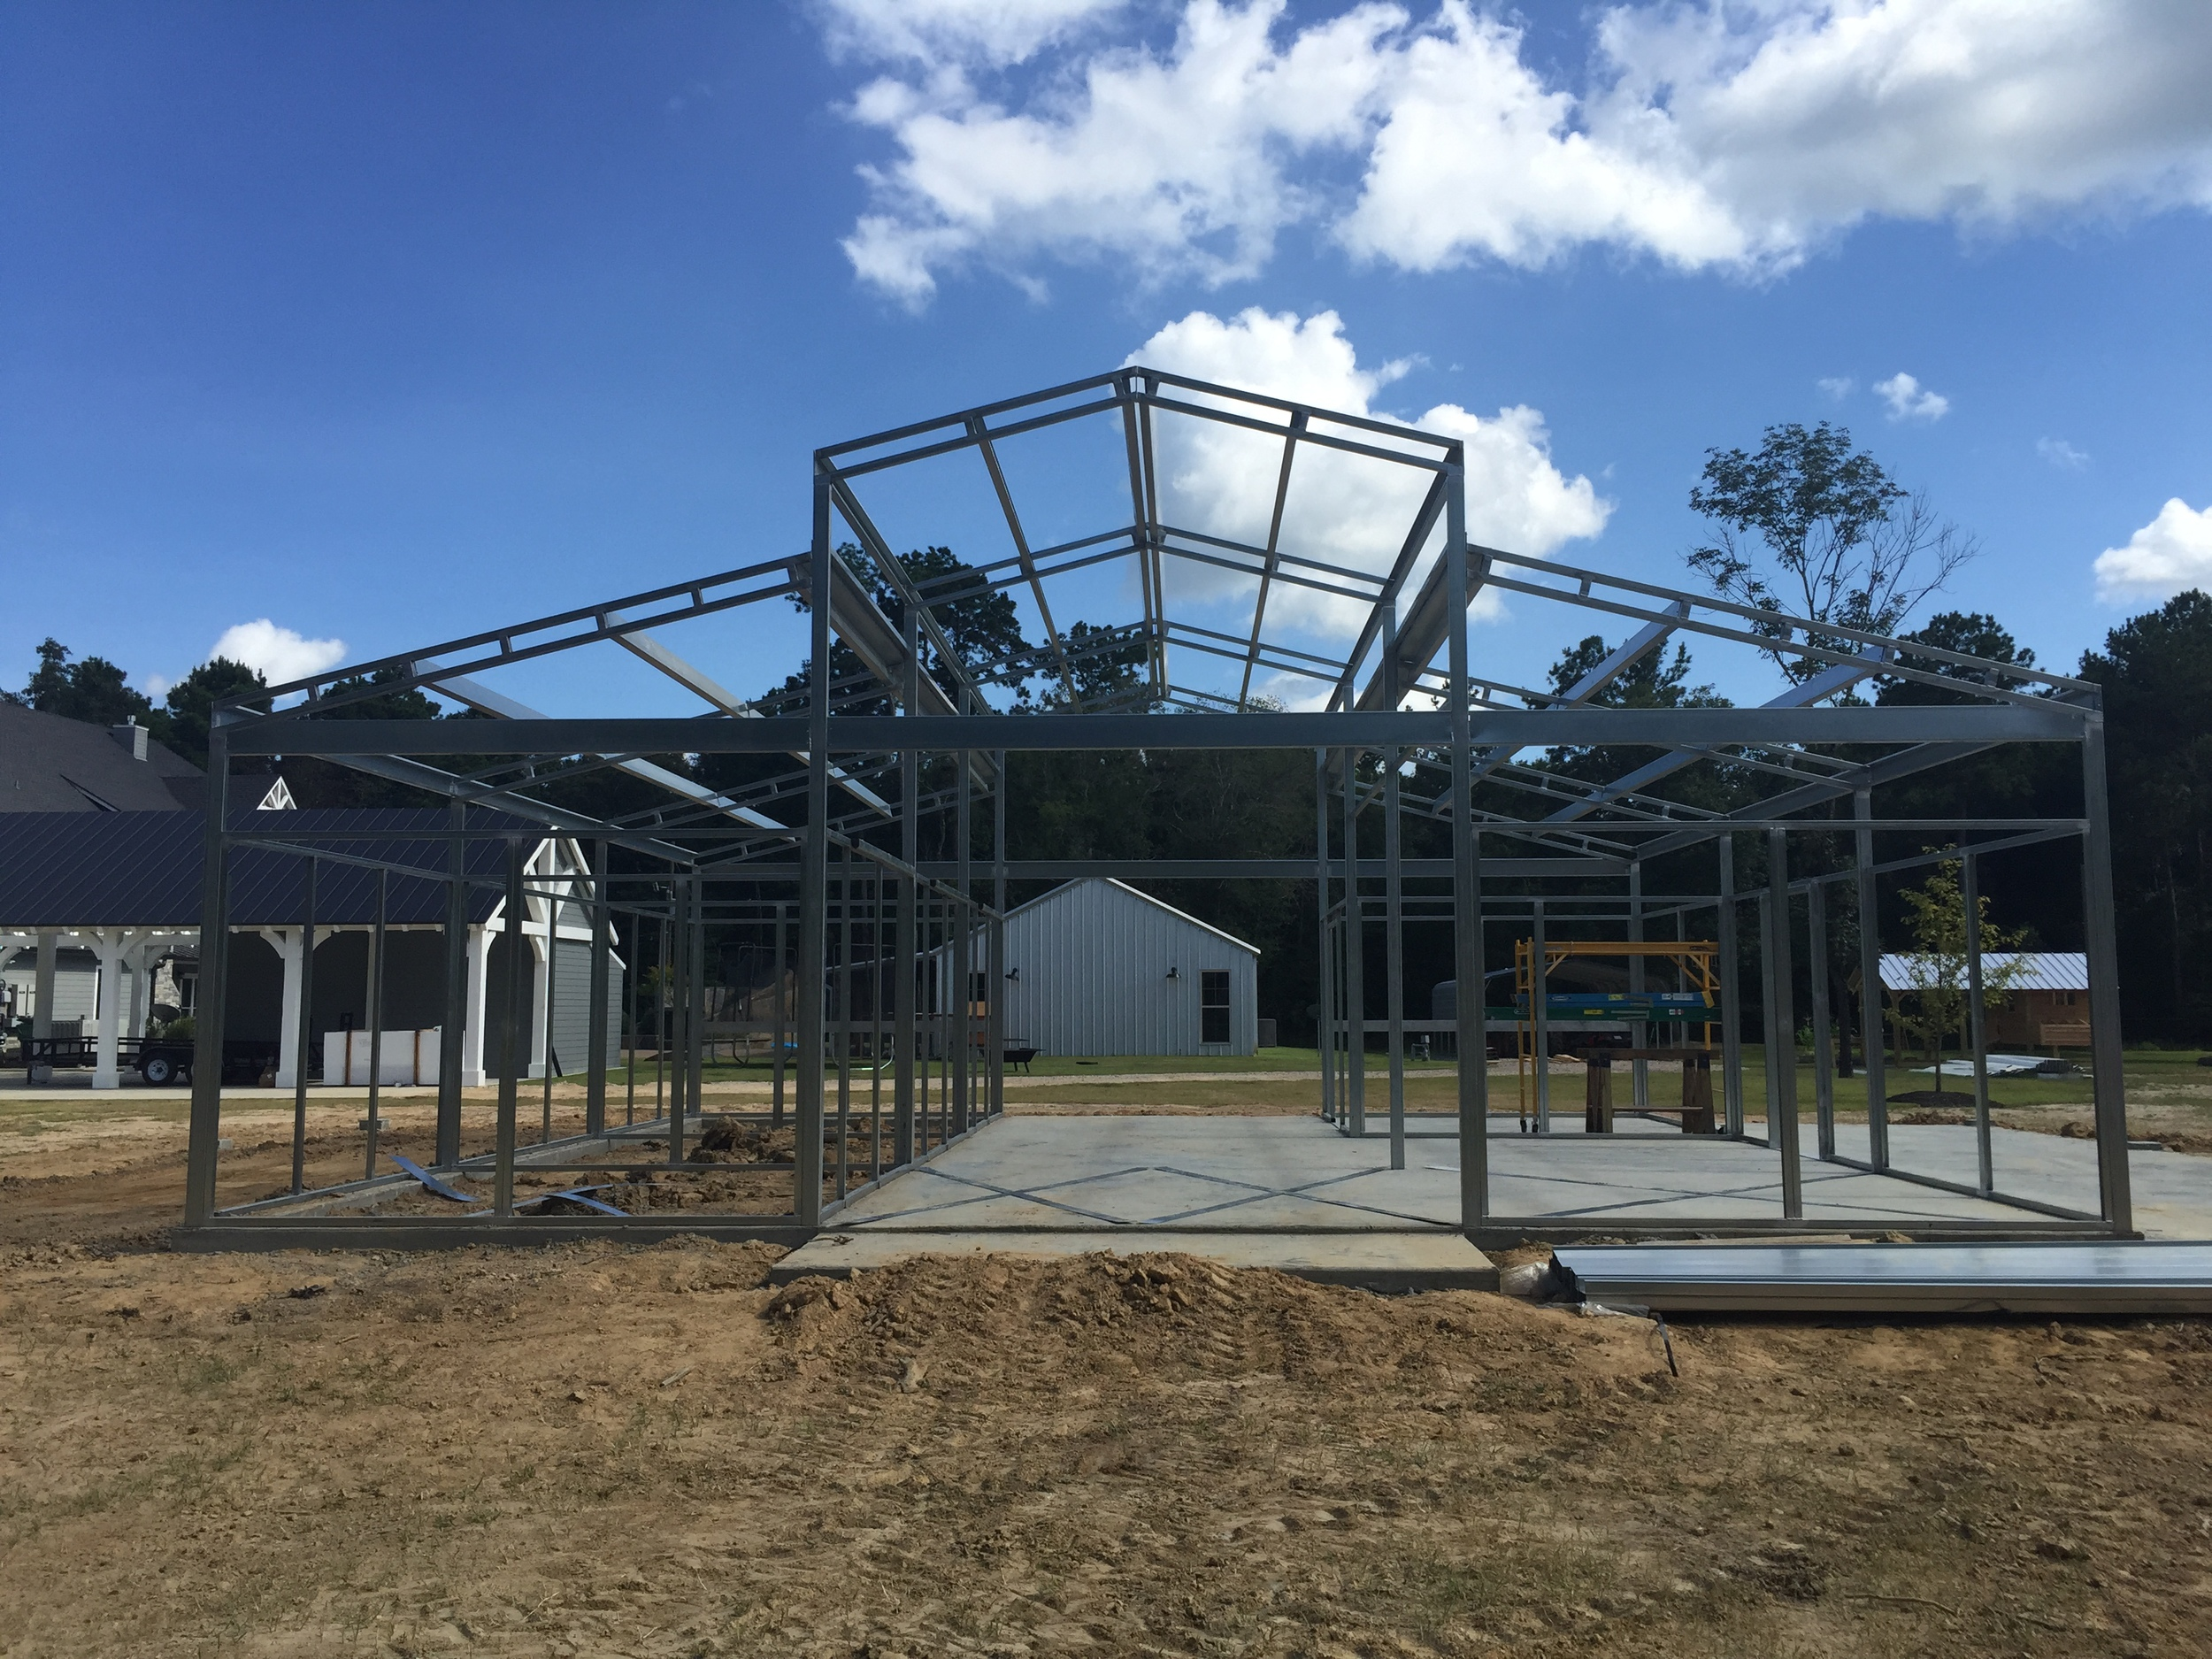 36 x 36 x 10 RCA Horse Barn with Concrete Foundation.